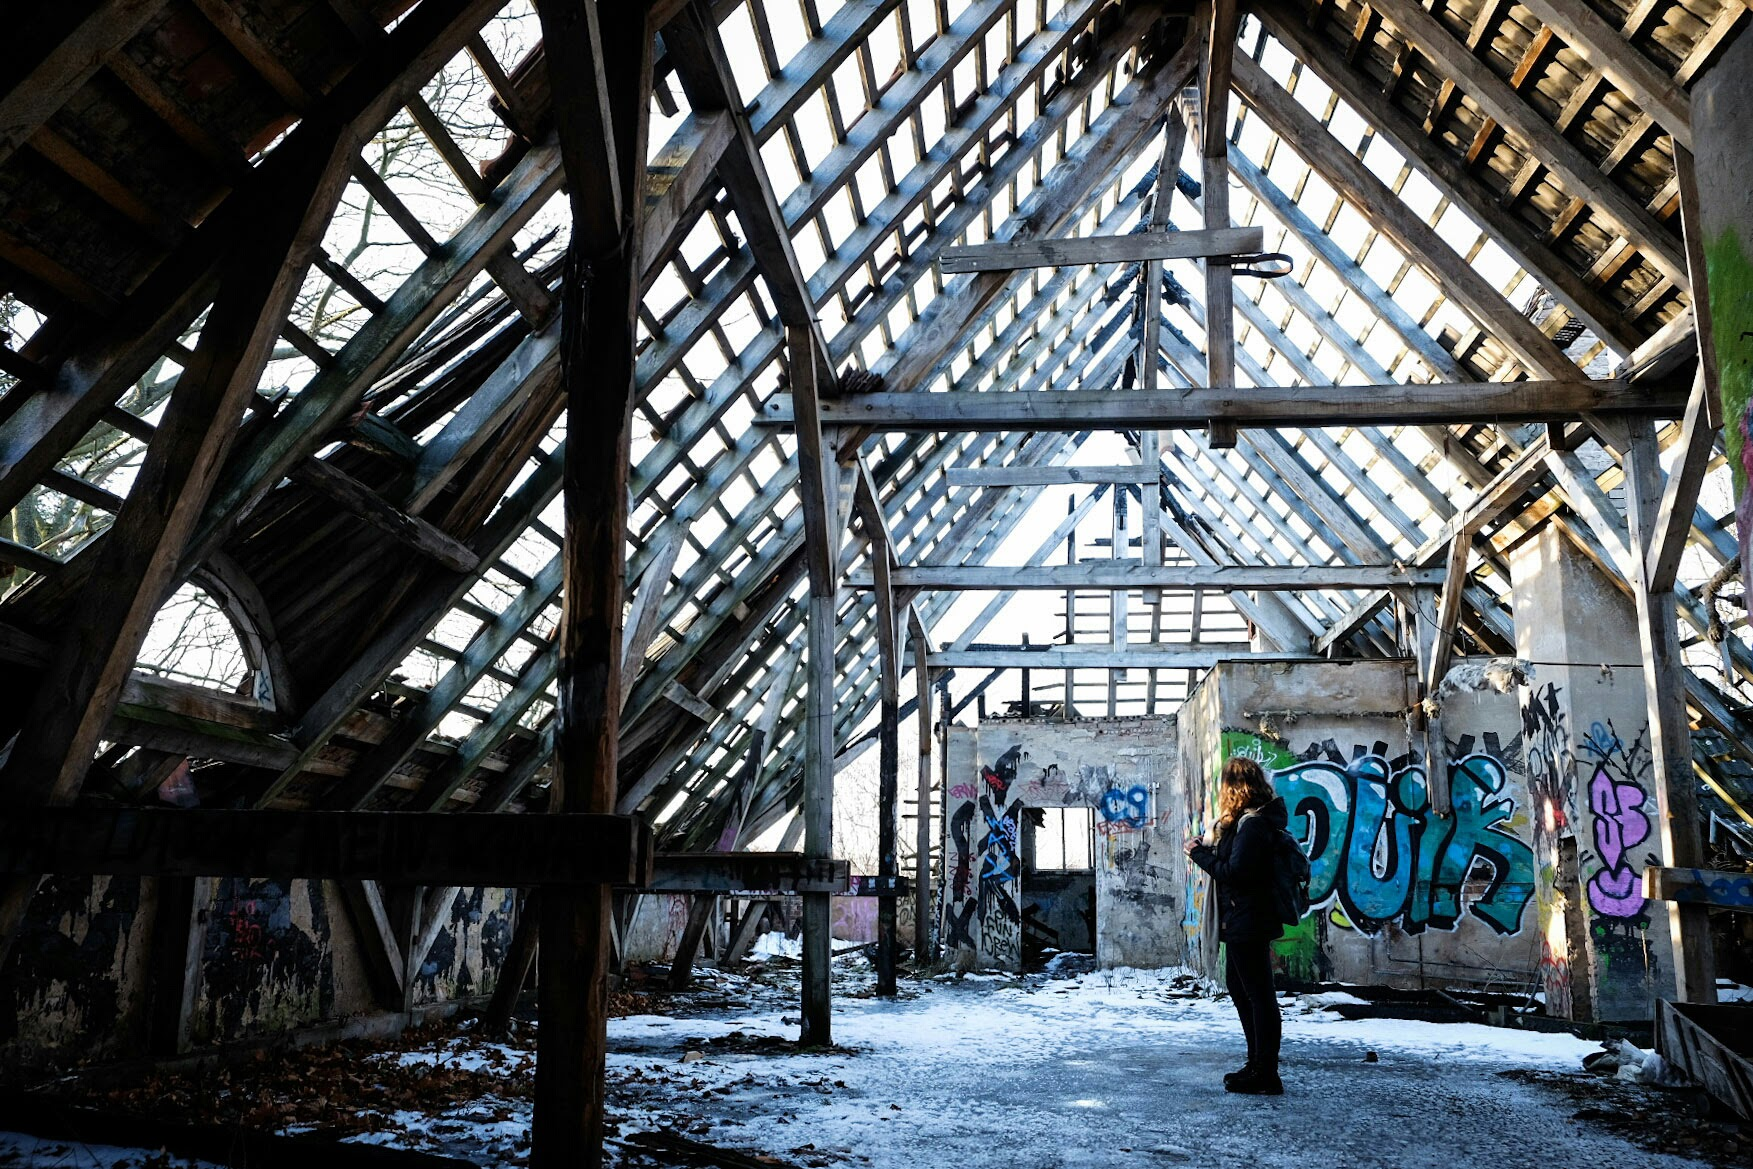 Suzanne in the abandoned hospital